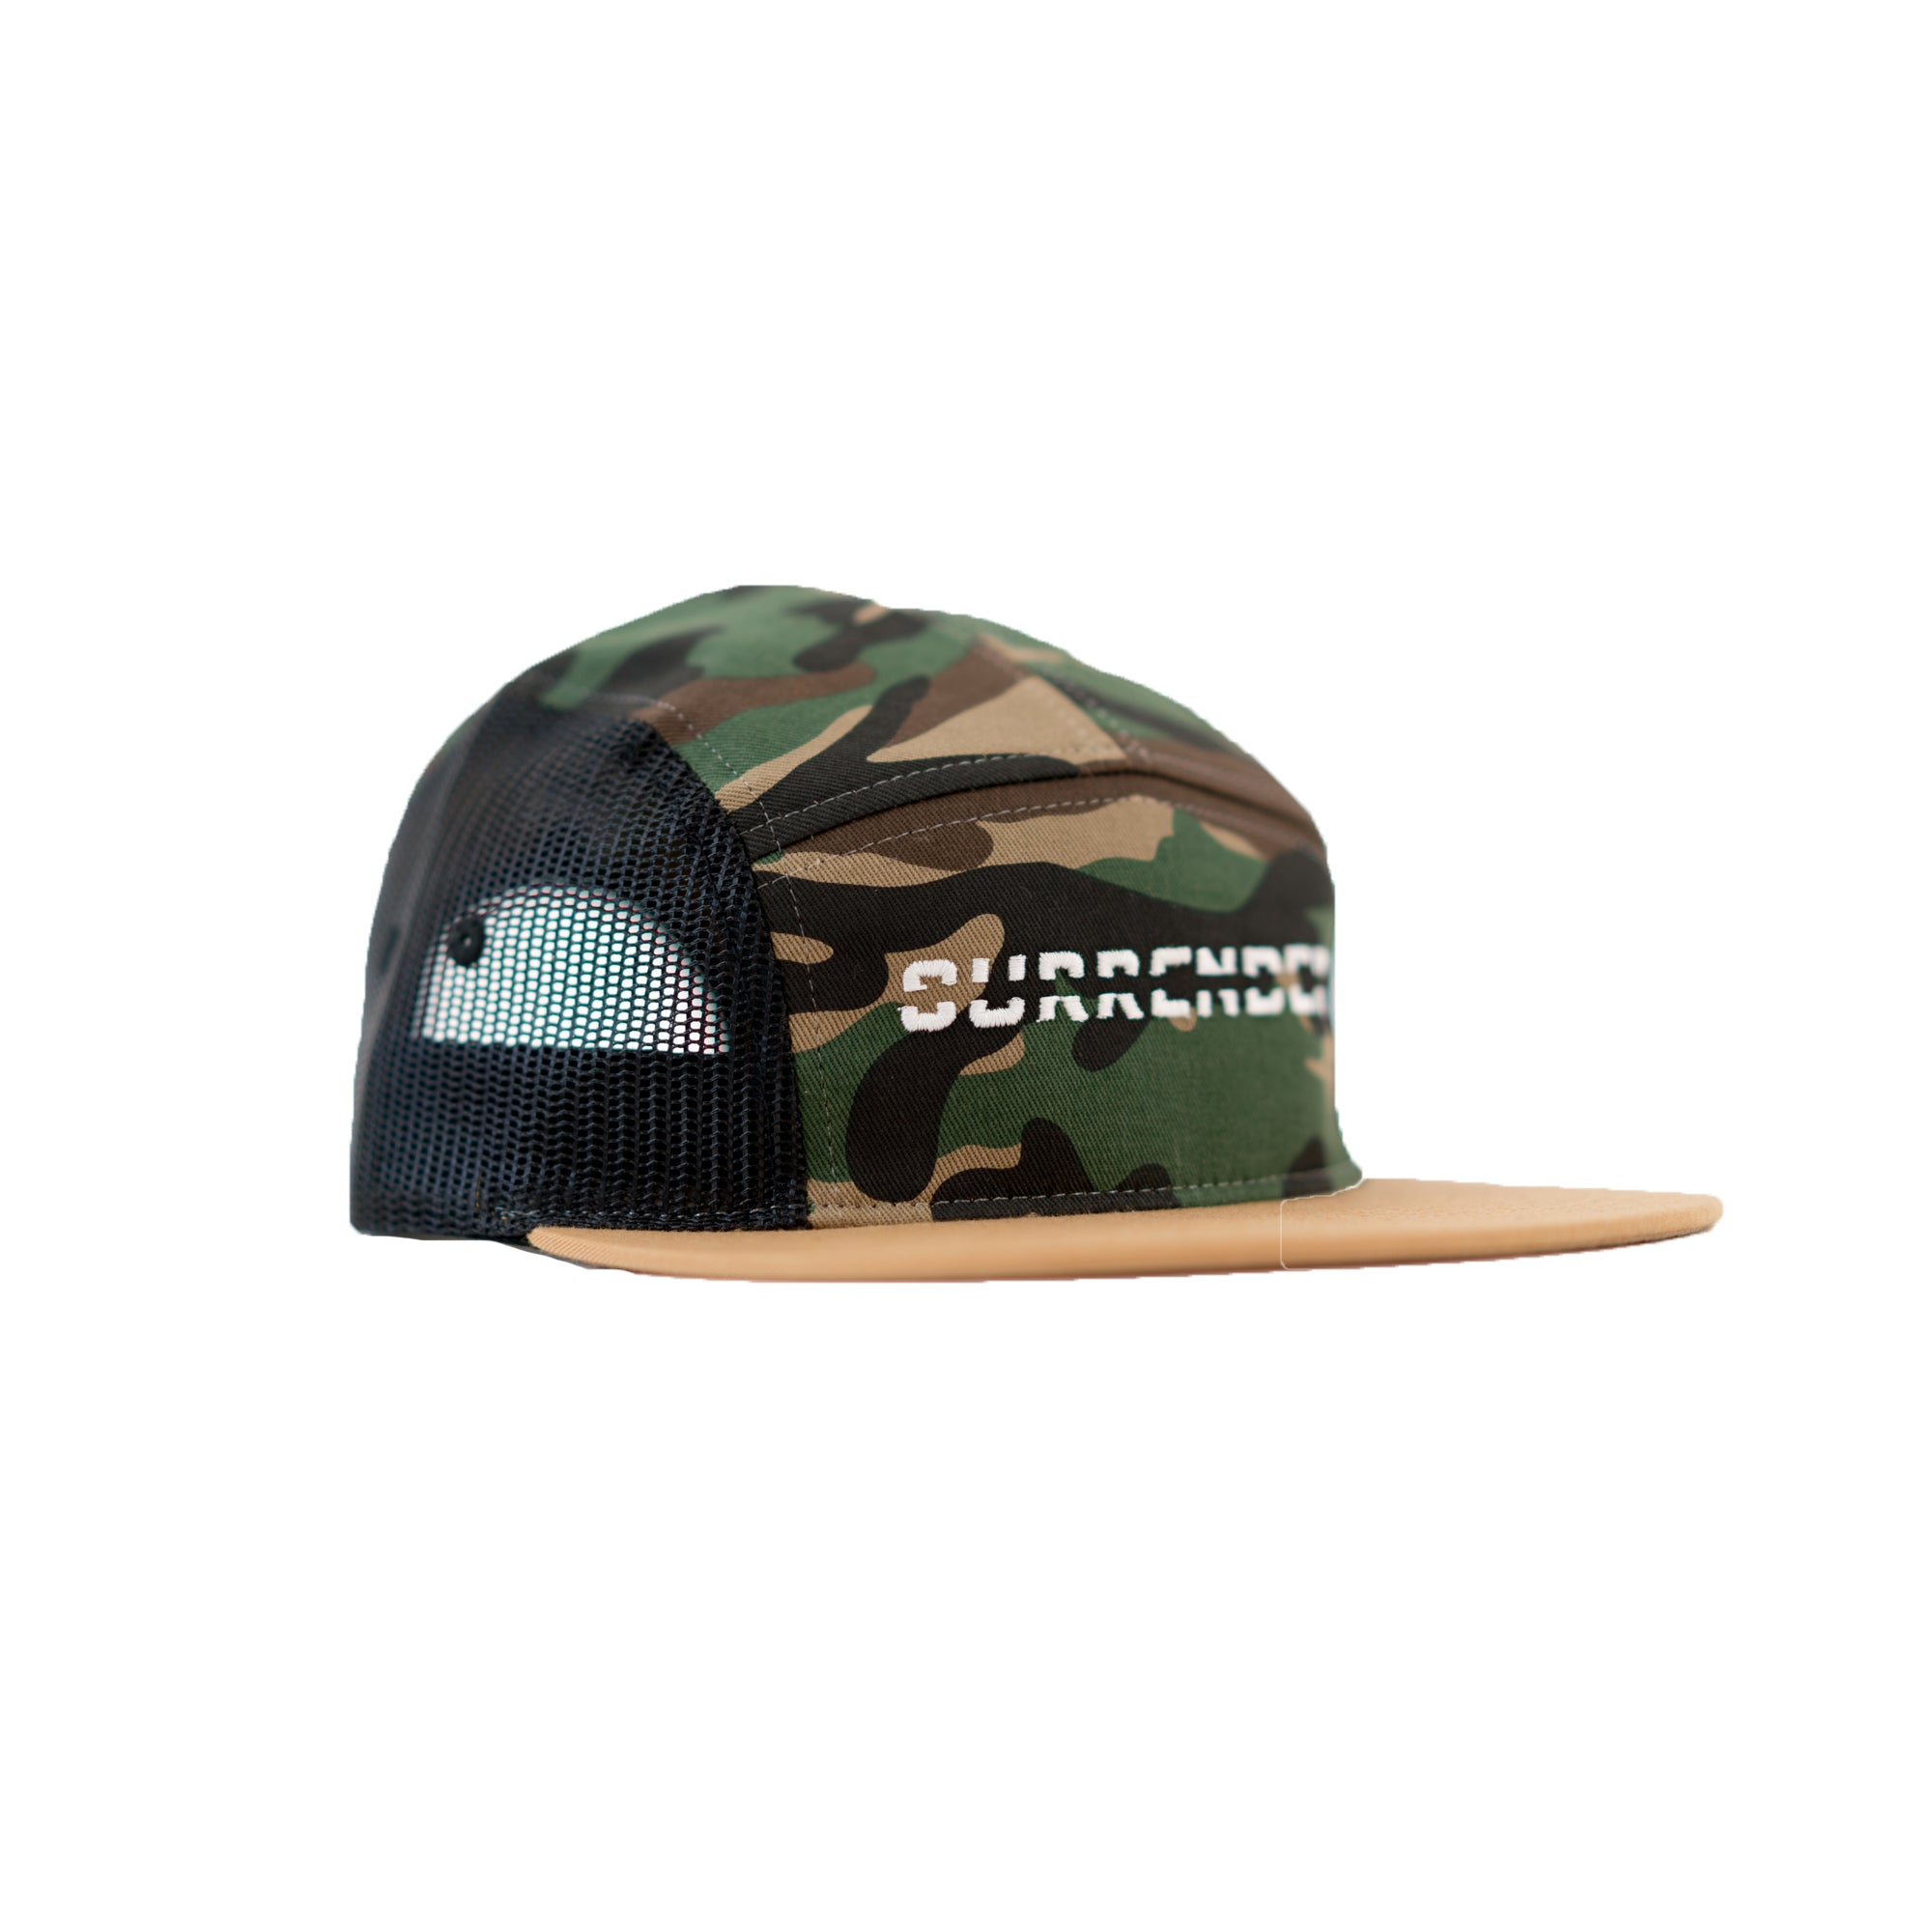 Never Surrender Mesh 5 Panel - Camo